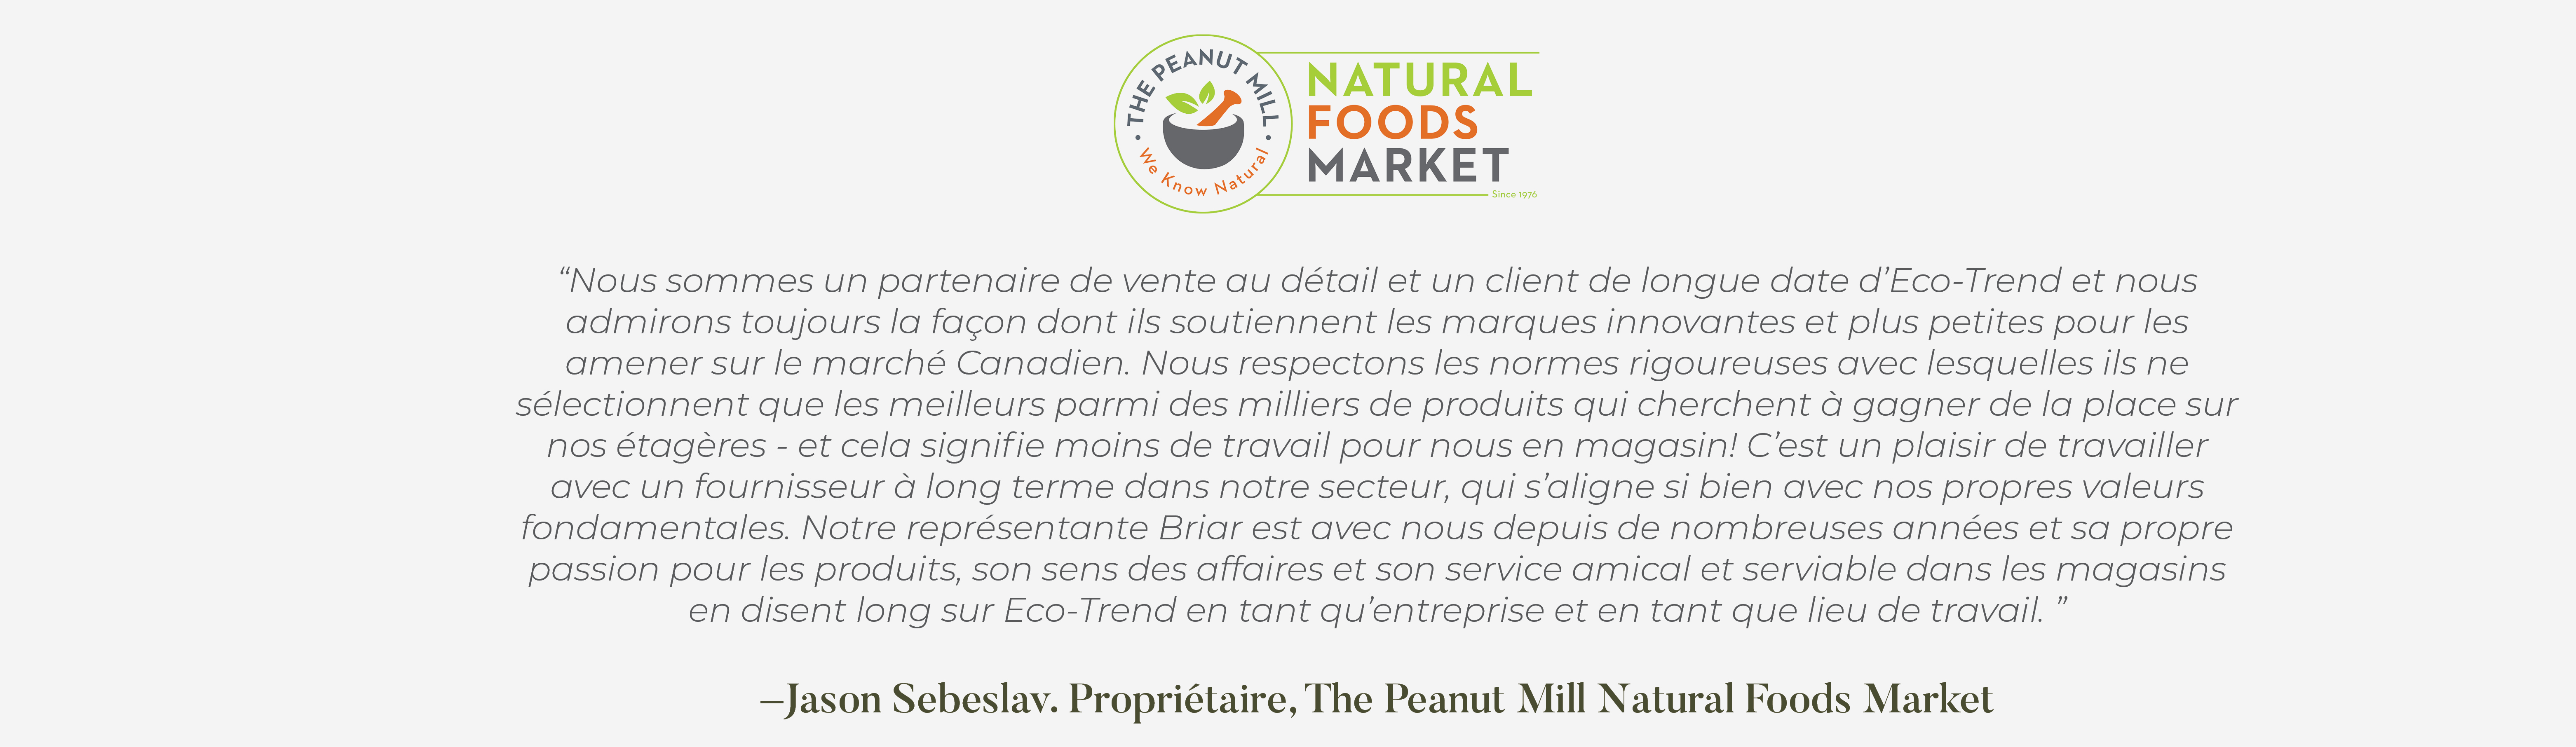 Jason Sebeslav of Natural Foods Market testimonial